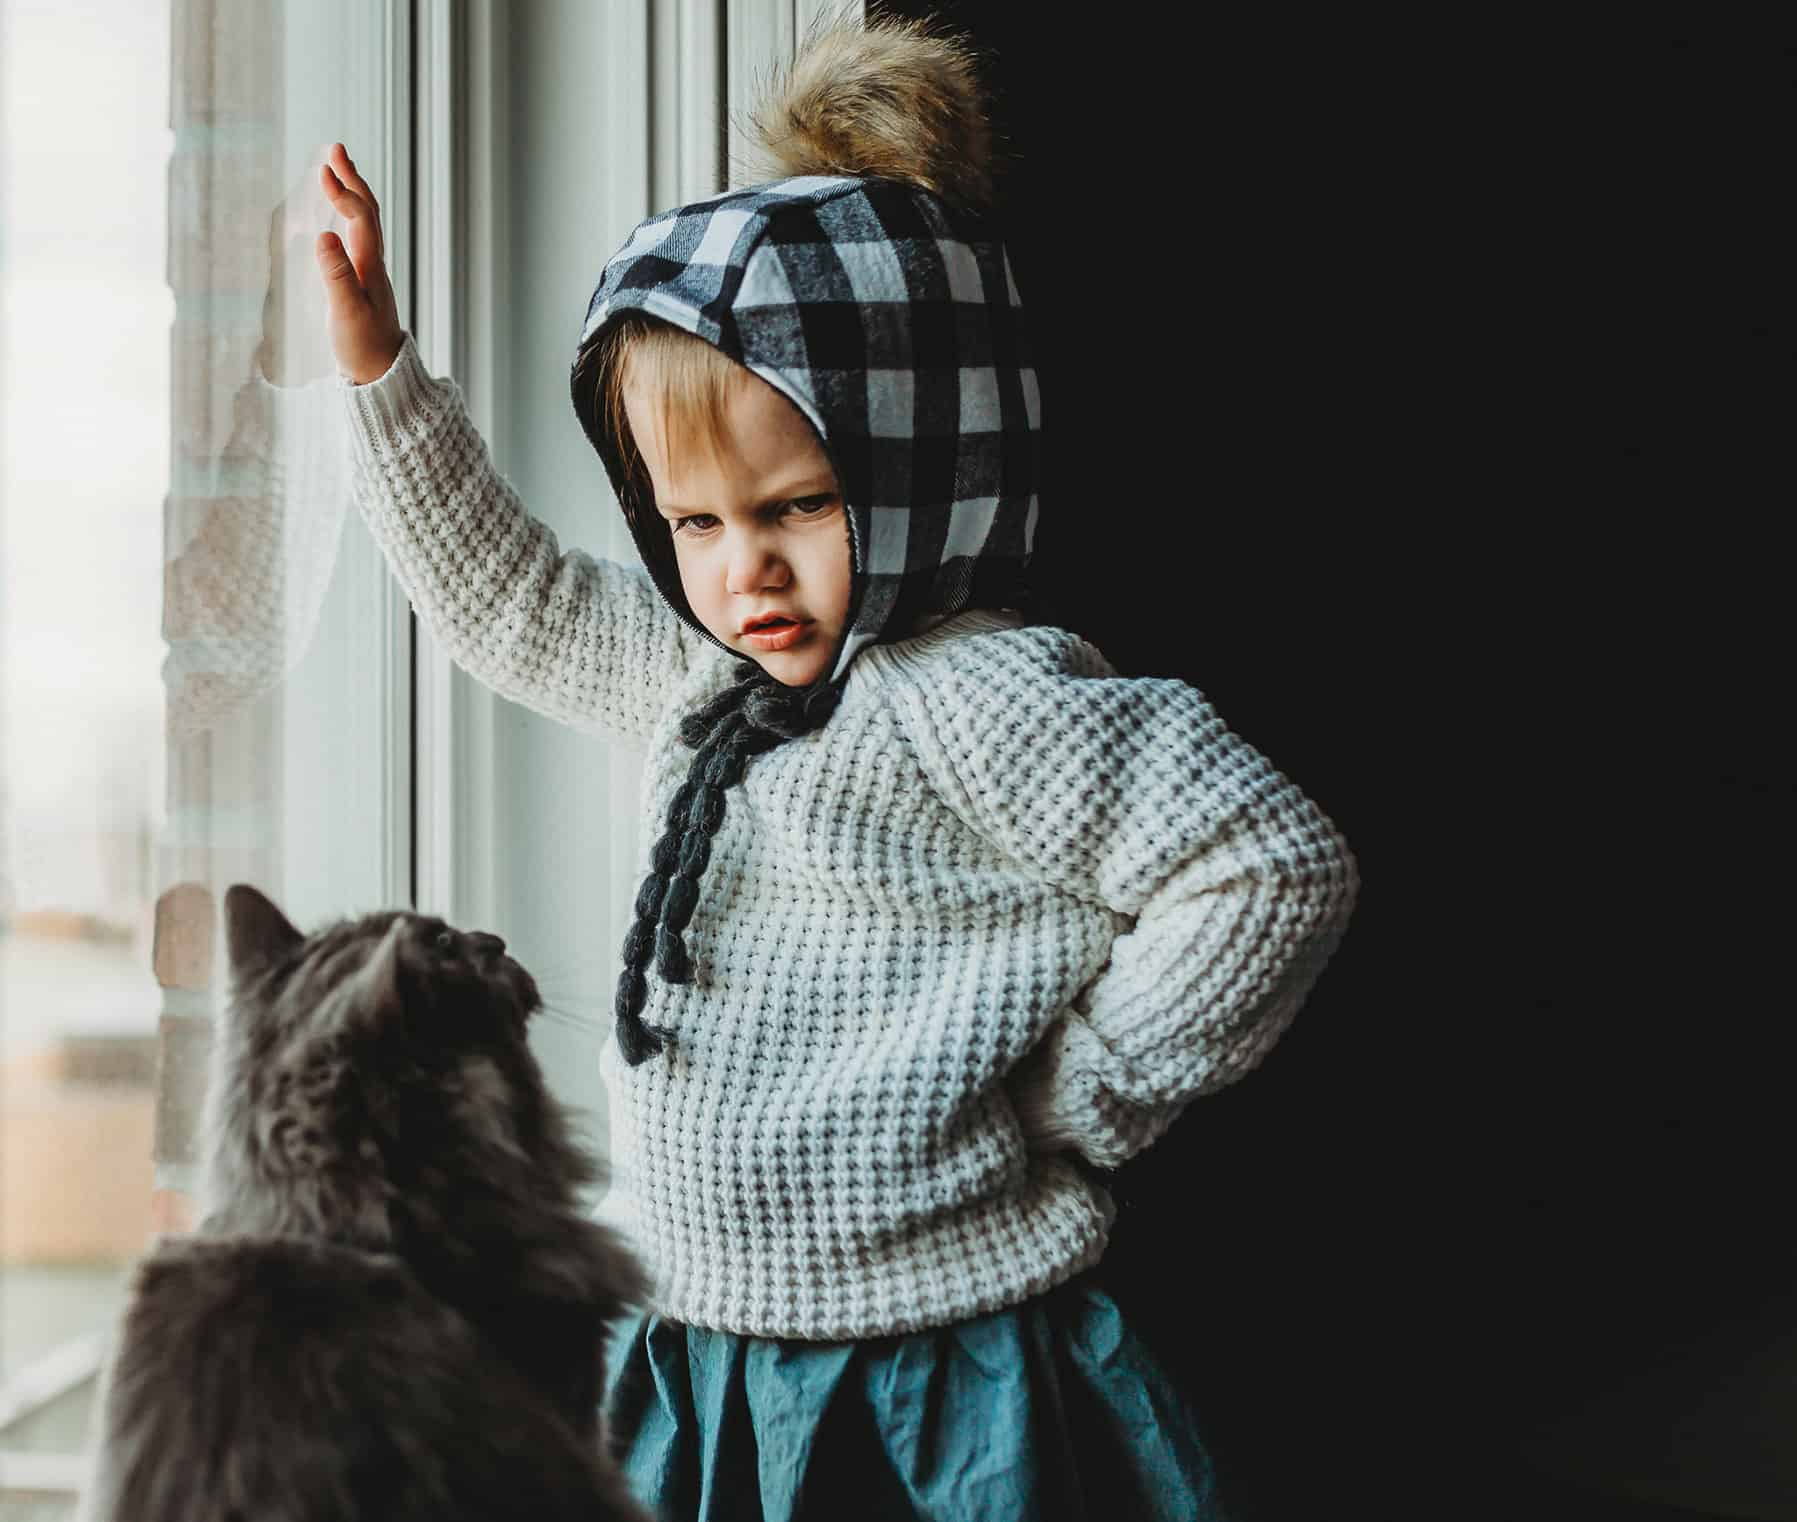 A small girl looking at her cat in a funny way while having her hand lean up to the window